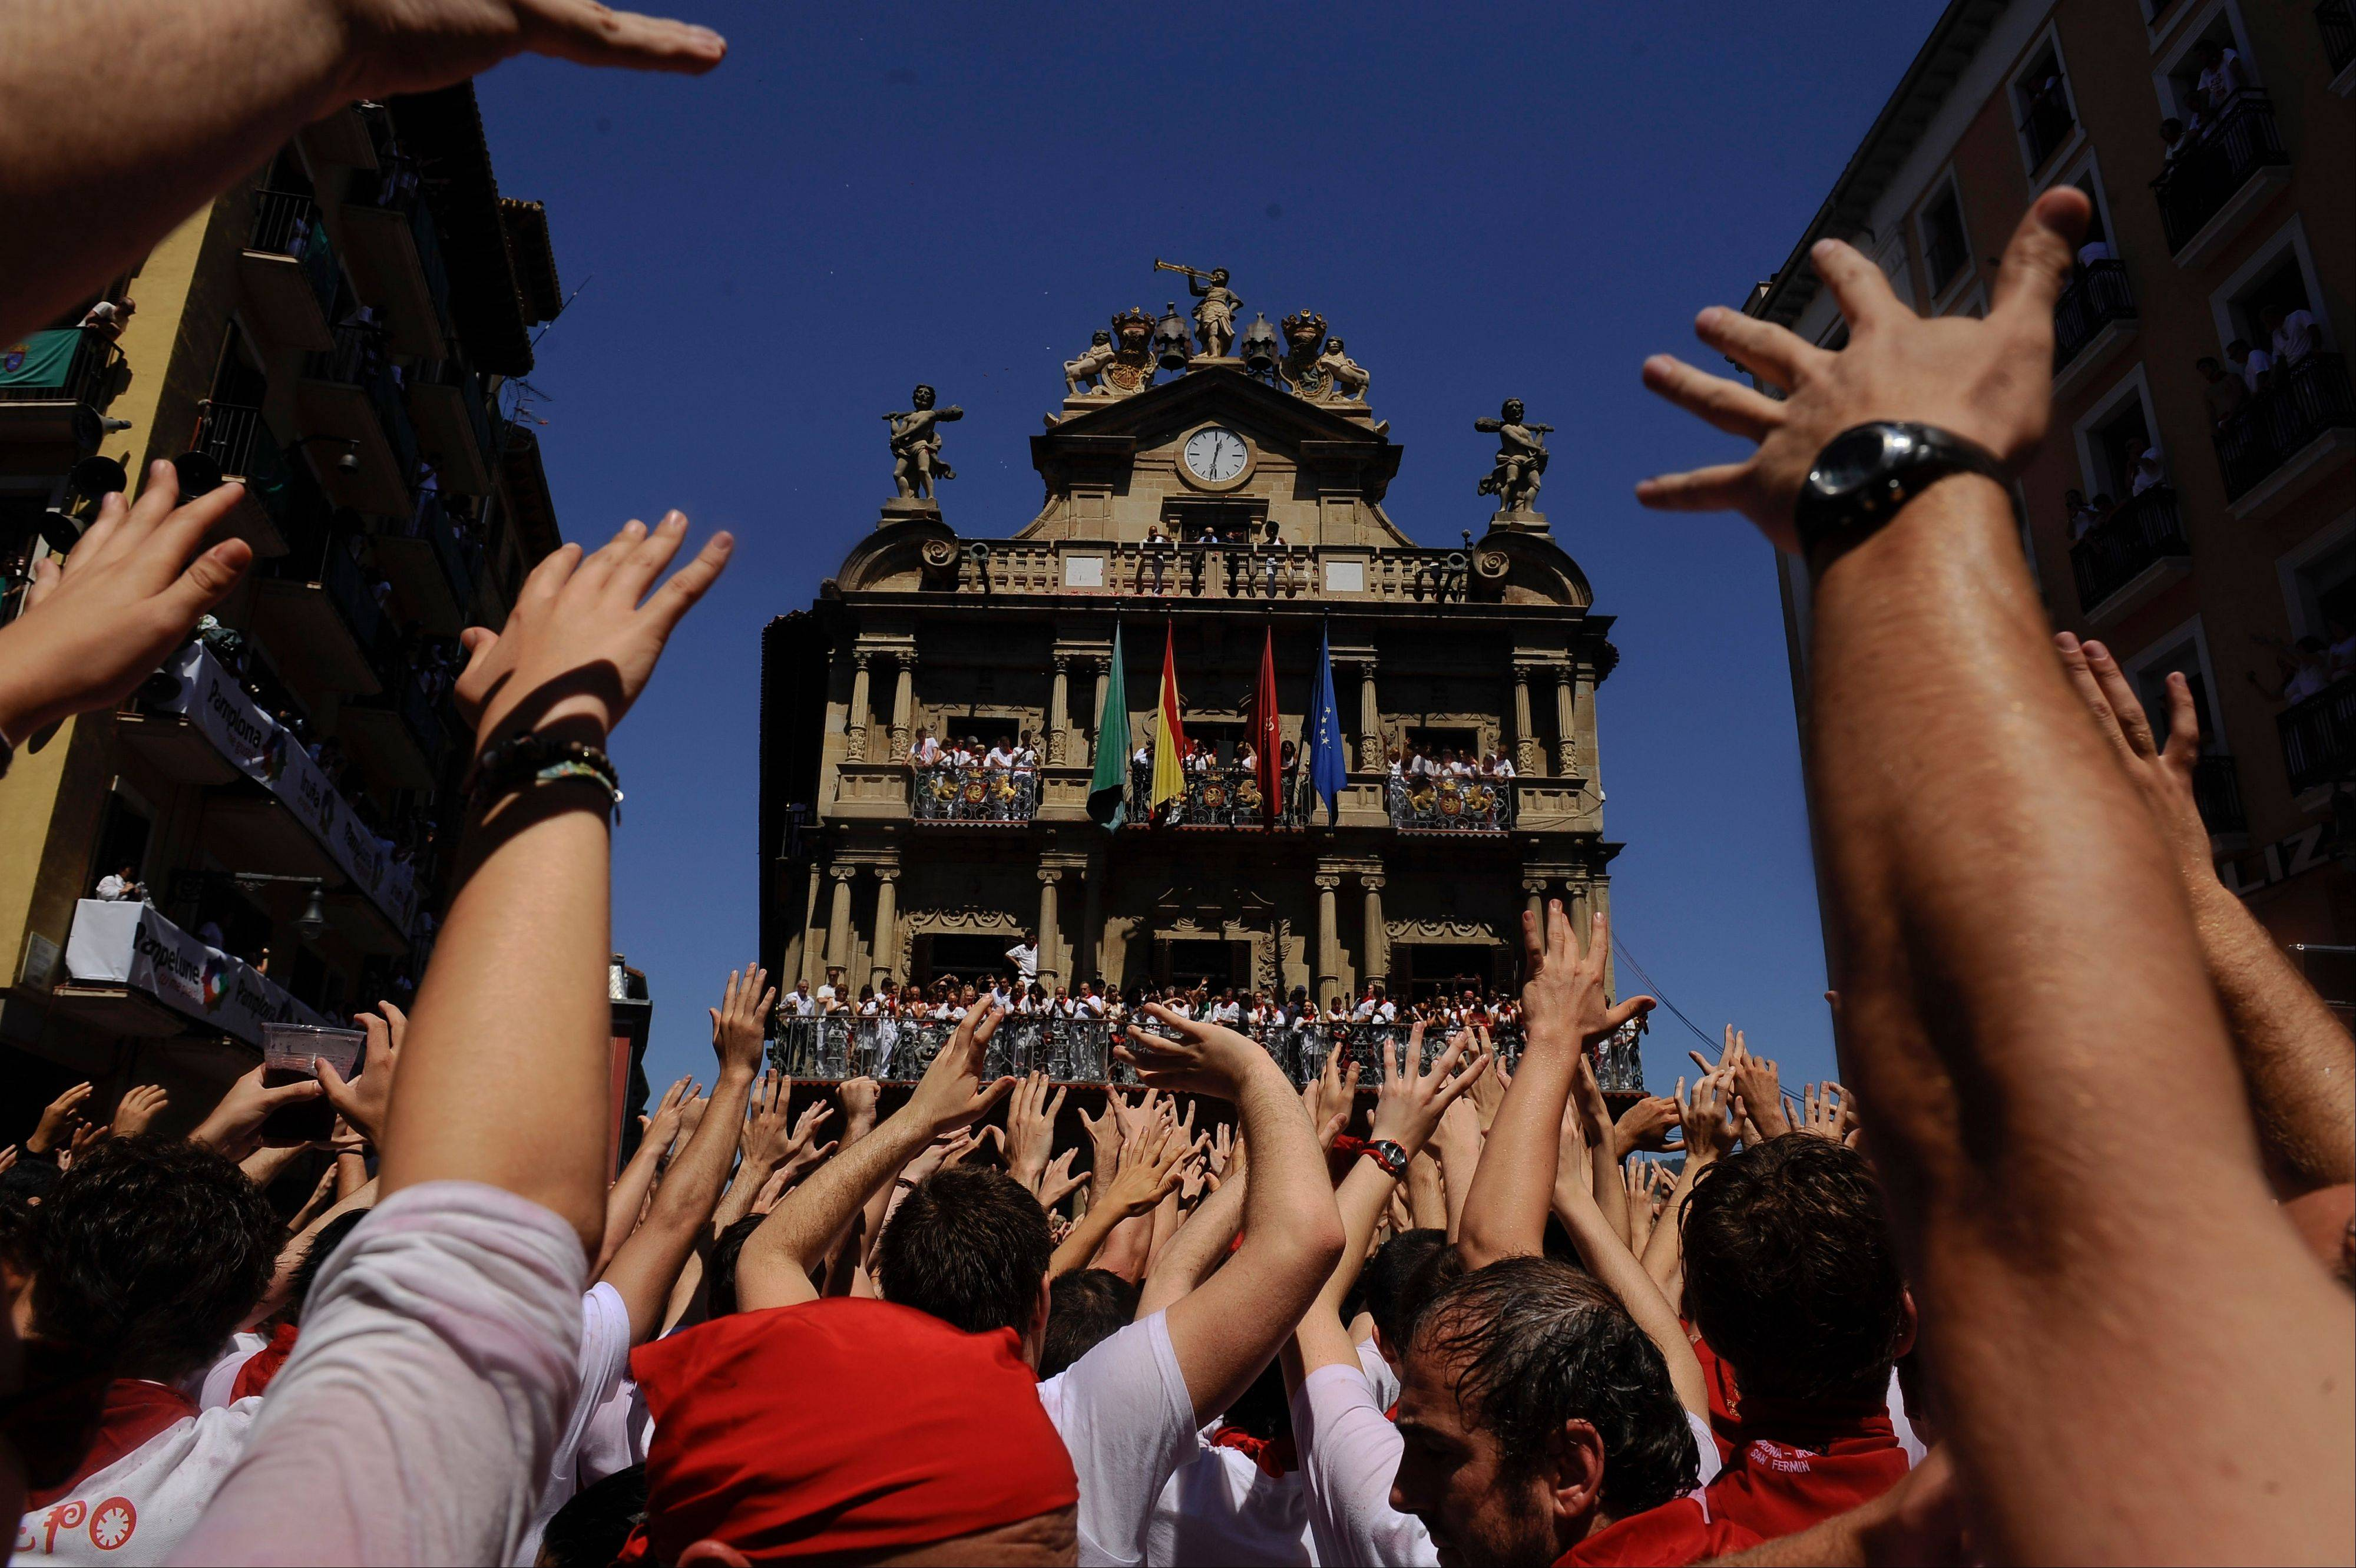 "Revelers enjoy themselves in Ayuntamiento square, in Pamplona, northern Spain on Saturday, July 6, celebrating the start of Spain's most famous bull-running festival with the annual launch of the ""chupinazo"" rocket. Perhaps best glorified by Ernest Hemingway's 1926 novel ""The Sun Also Rises,"" the San Fermin festival is known around the world for the daily running of the bulls."